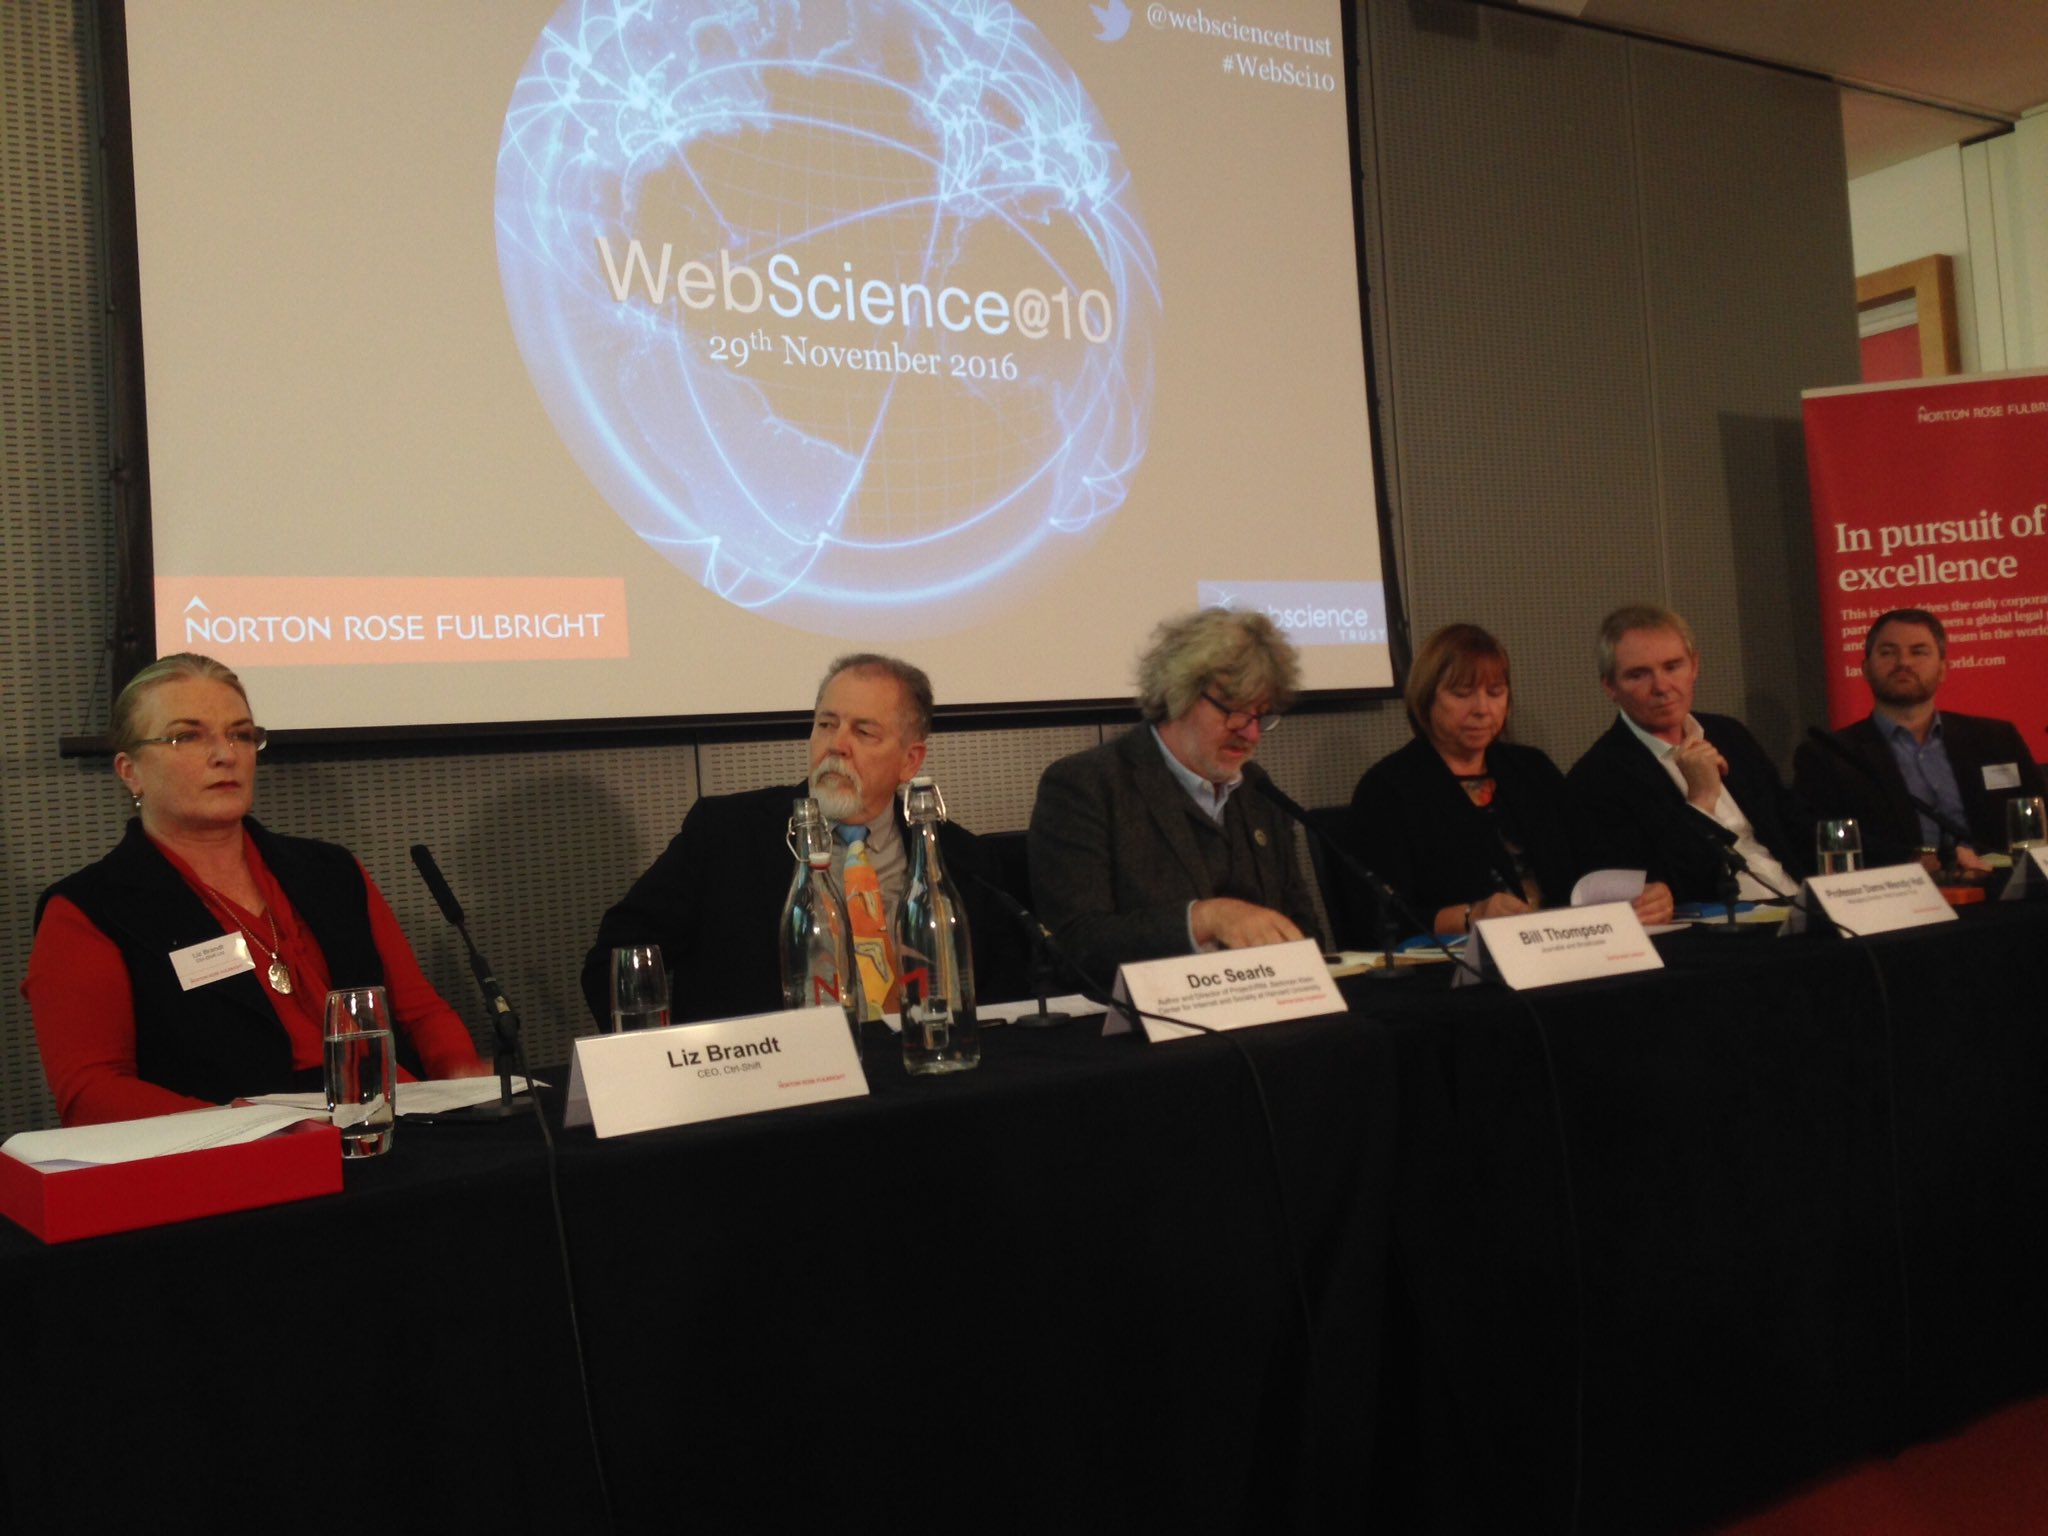 Outstanding panel and fantastic discussions  #WebSci10 https://t.co/i6KxyR1Tul